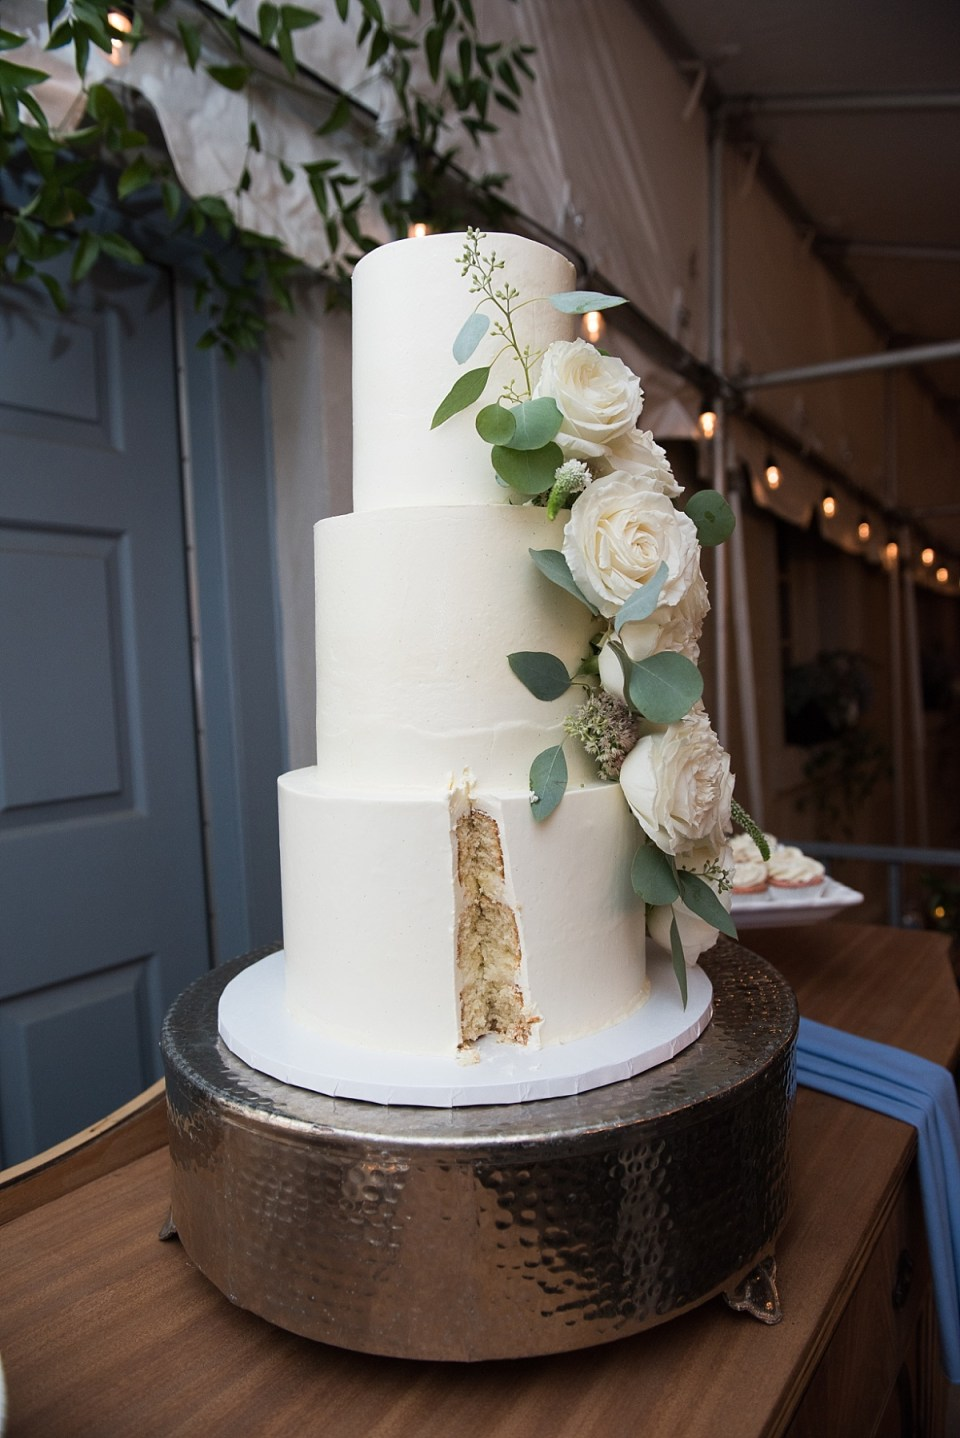 Cake Cutting at Carlyle House Wedding in Alexandria, VA by Erin Tetterton Photography